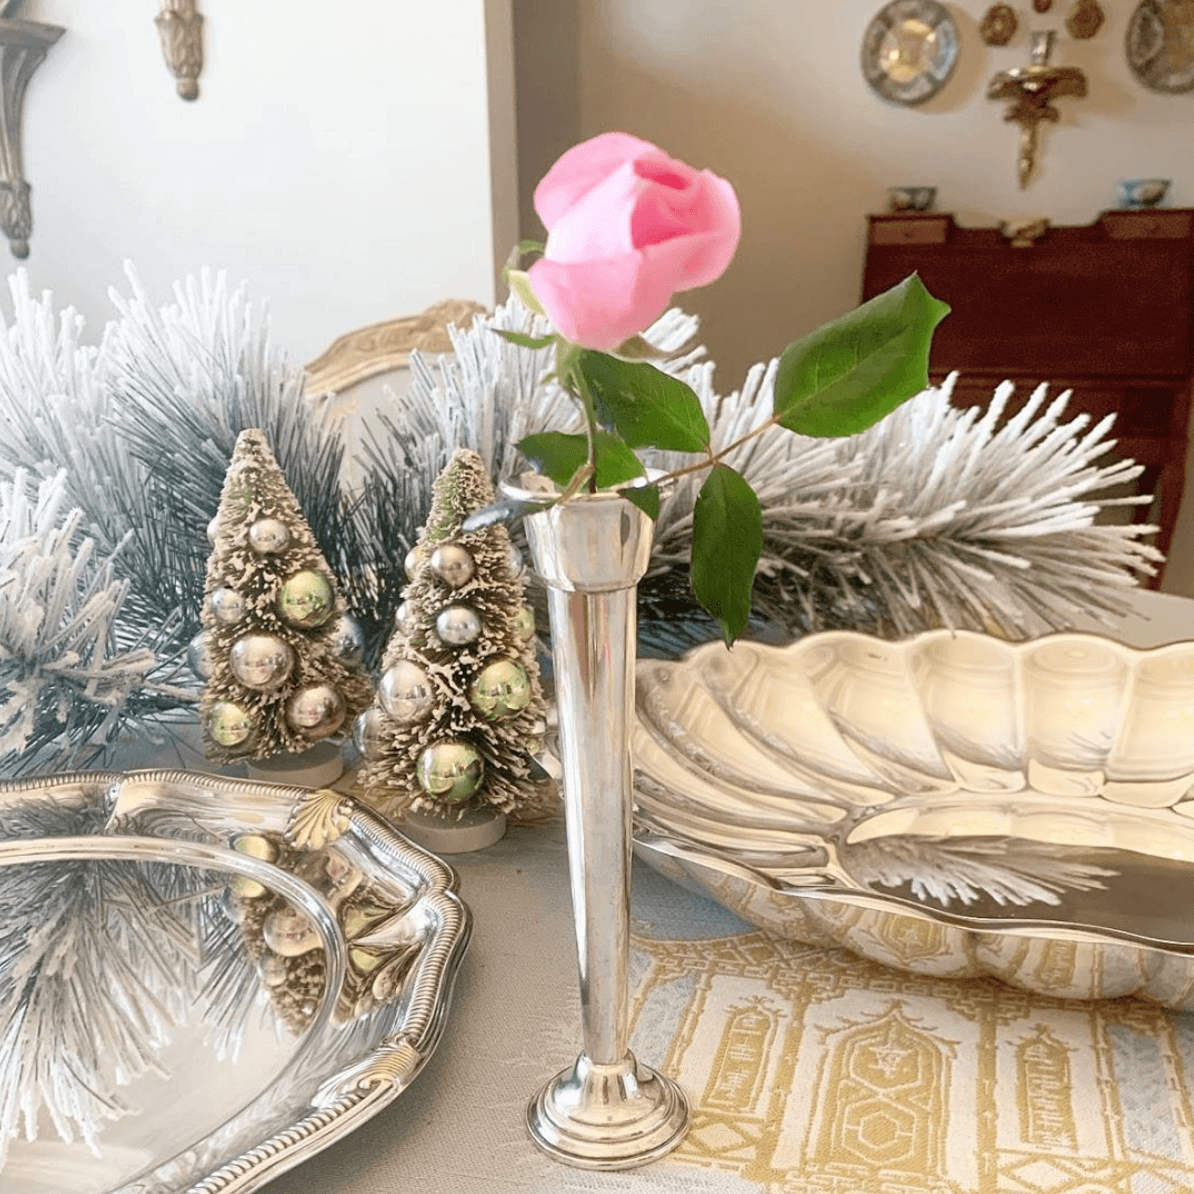 Southern antique store Valley Vintage